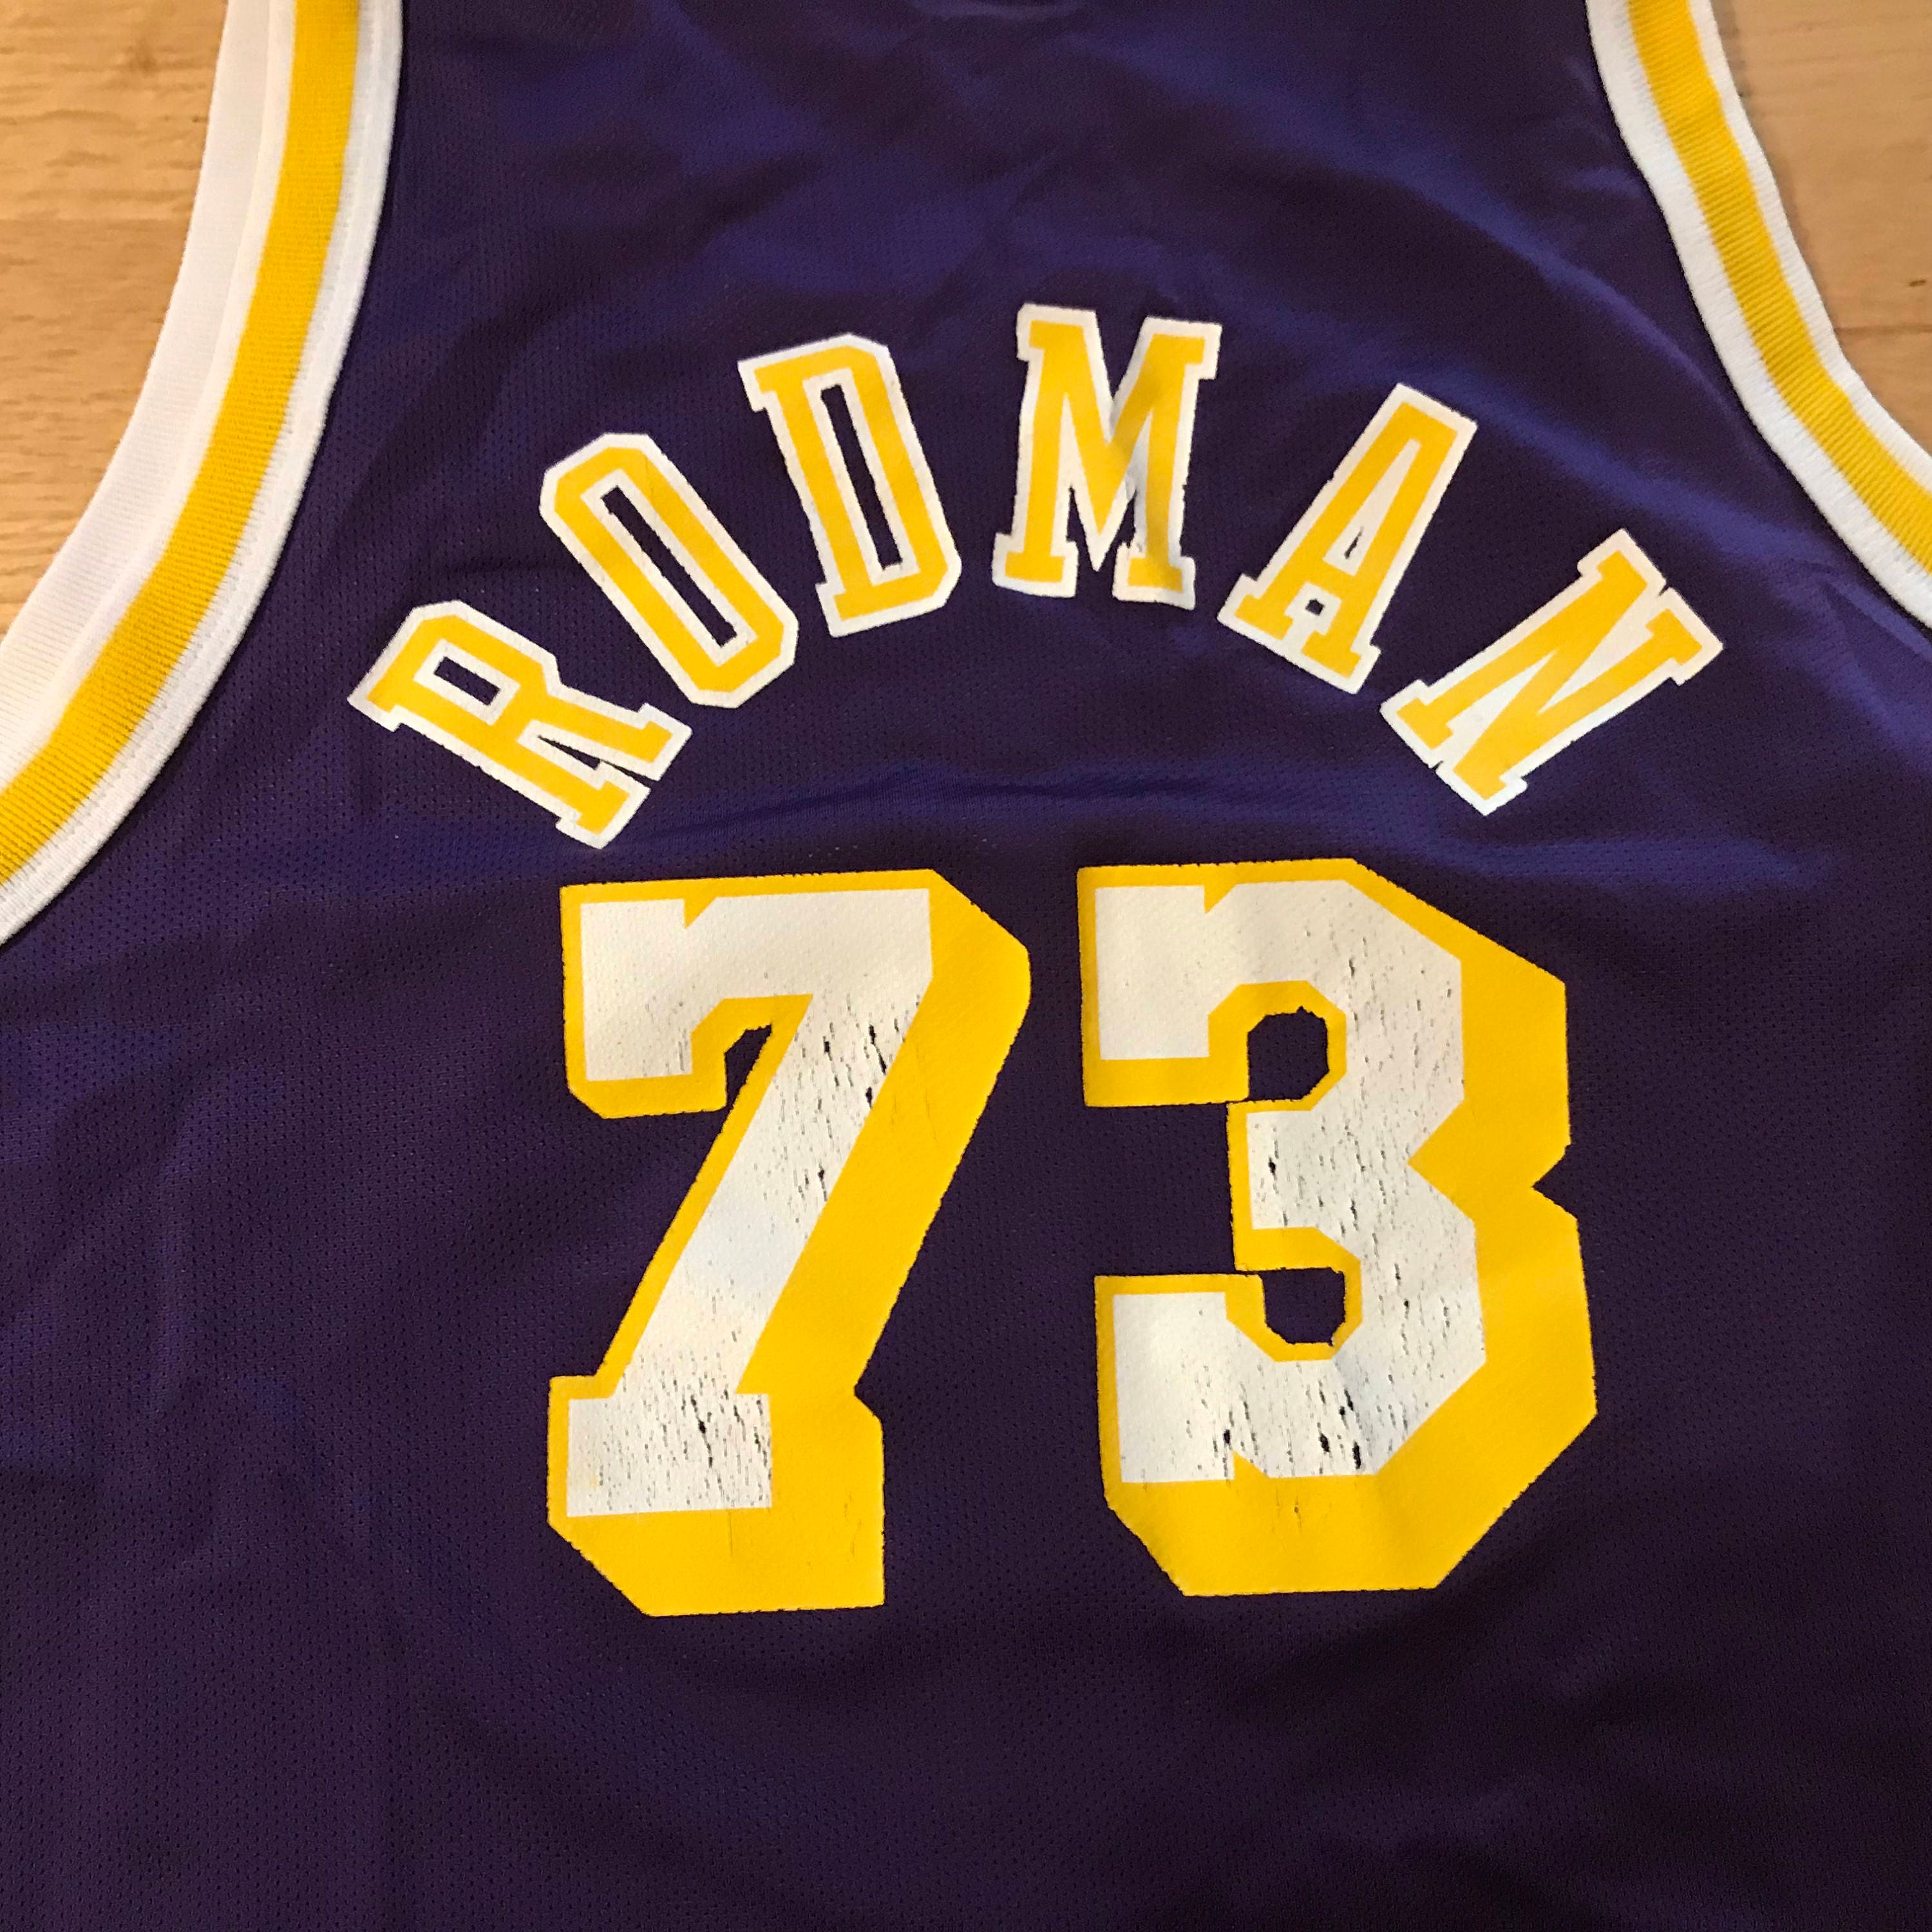 d1225aec1c2f Vintage Champion Dennis Rodman Los Angeles Lakers NBA Basketball Jersey  73  Size M